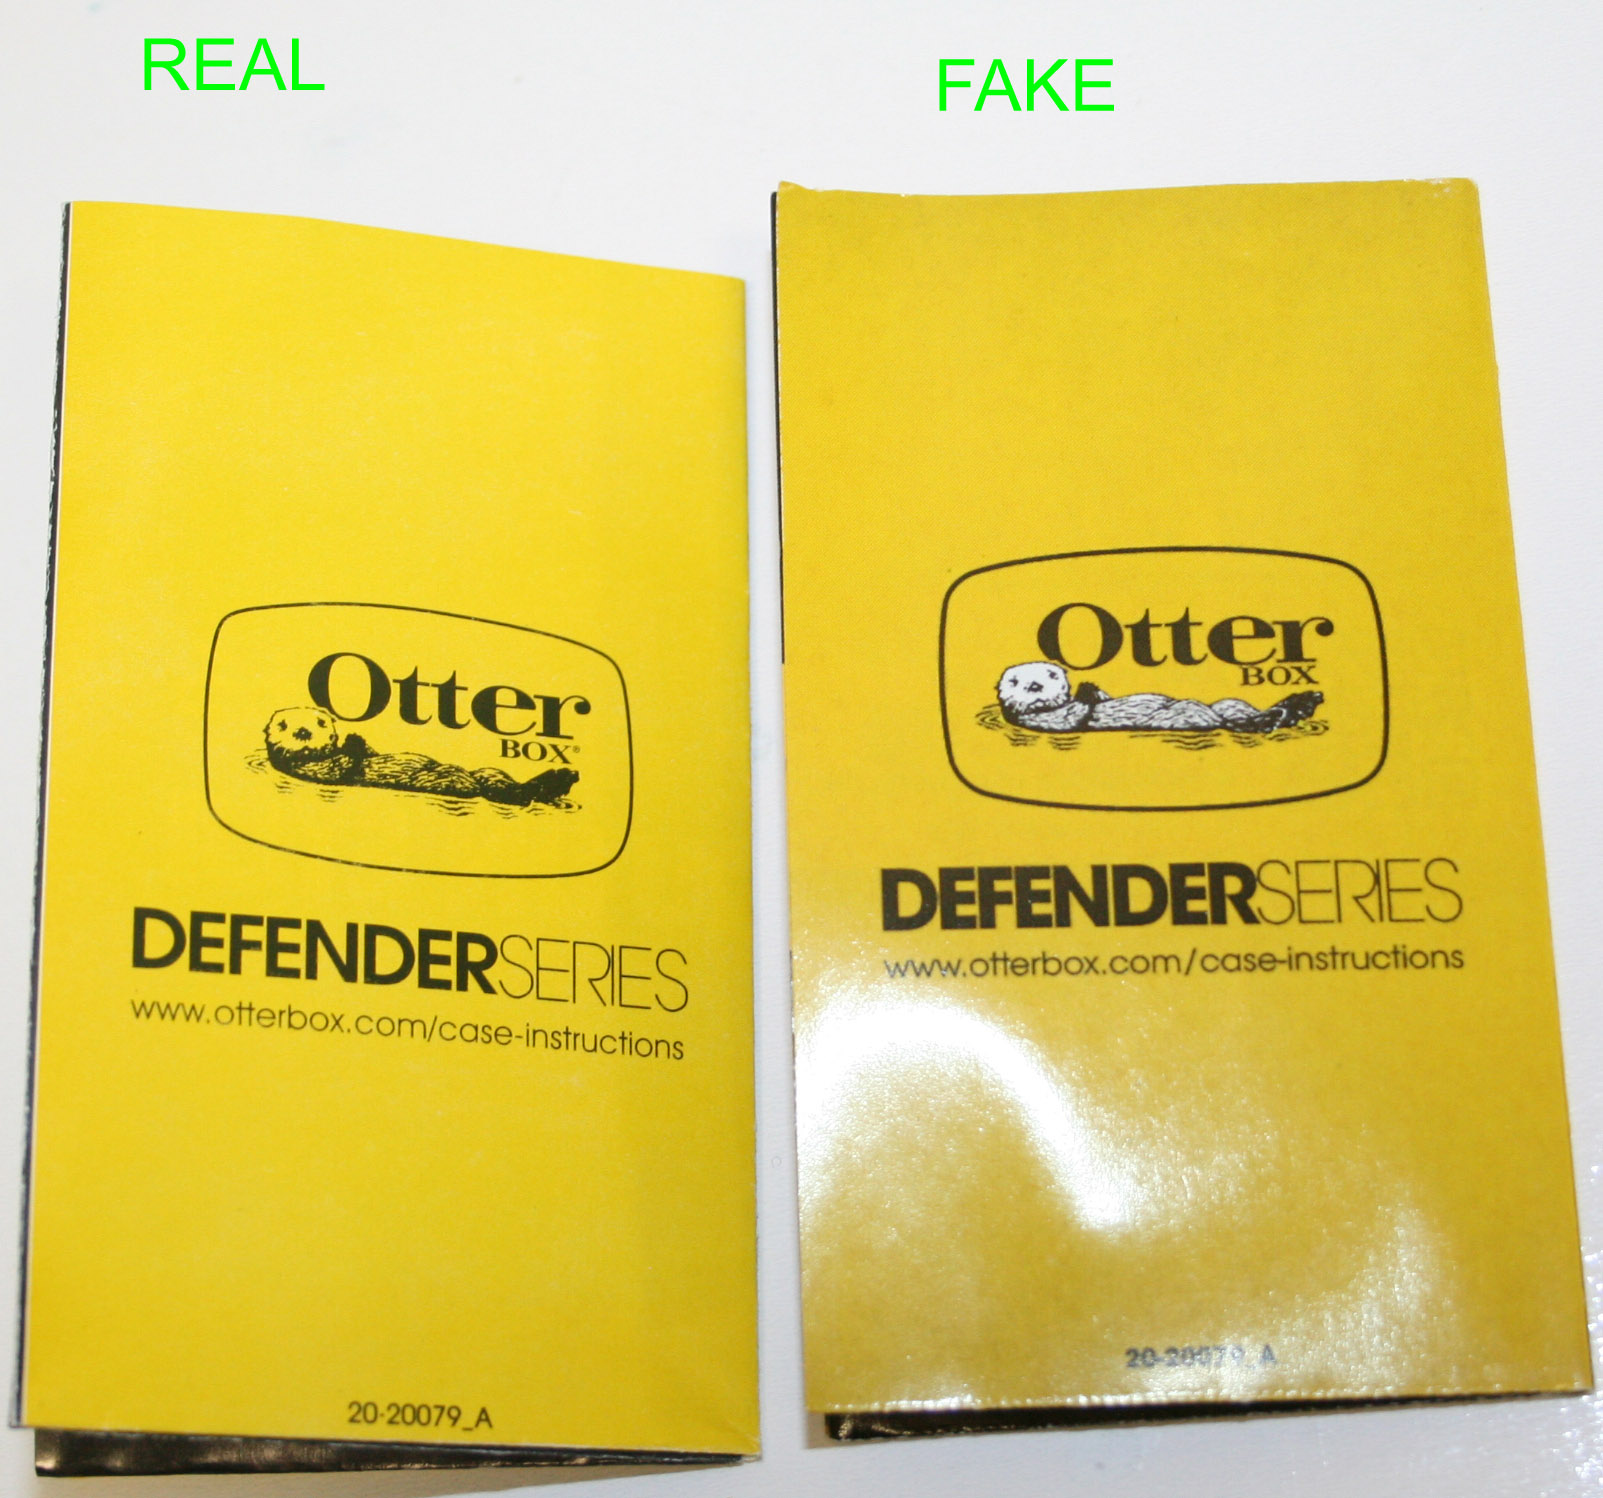 Counterfeit Phone Cases How To Tell Inaudible Games